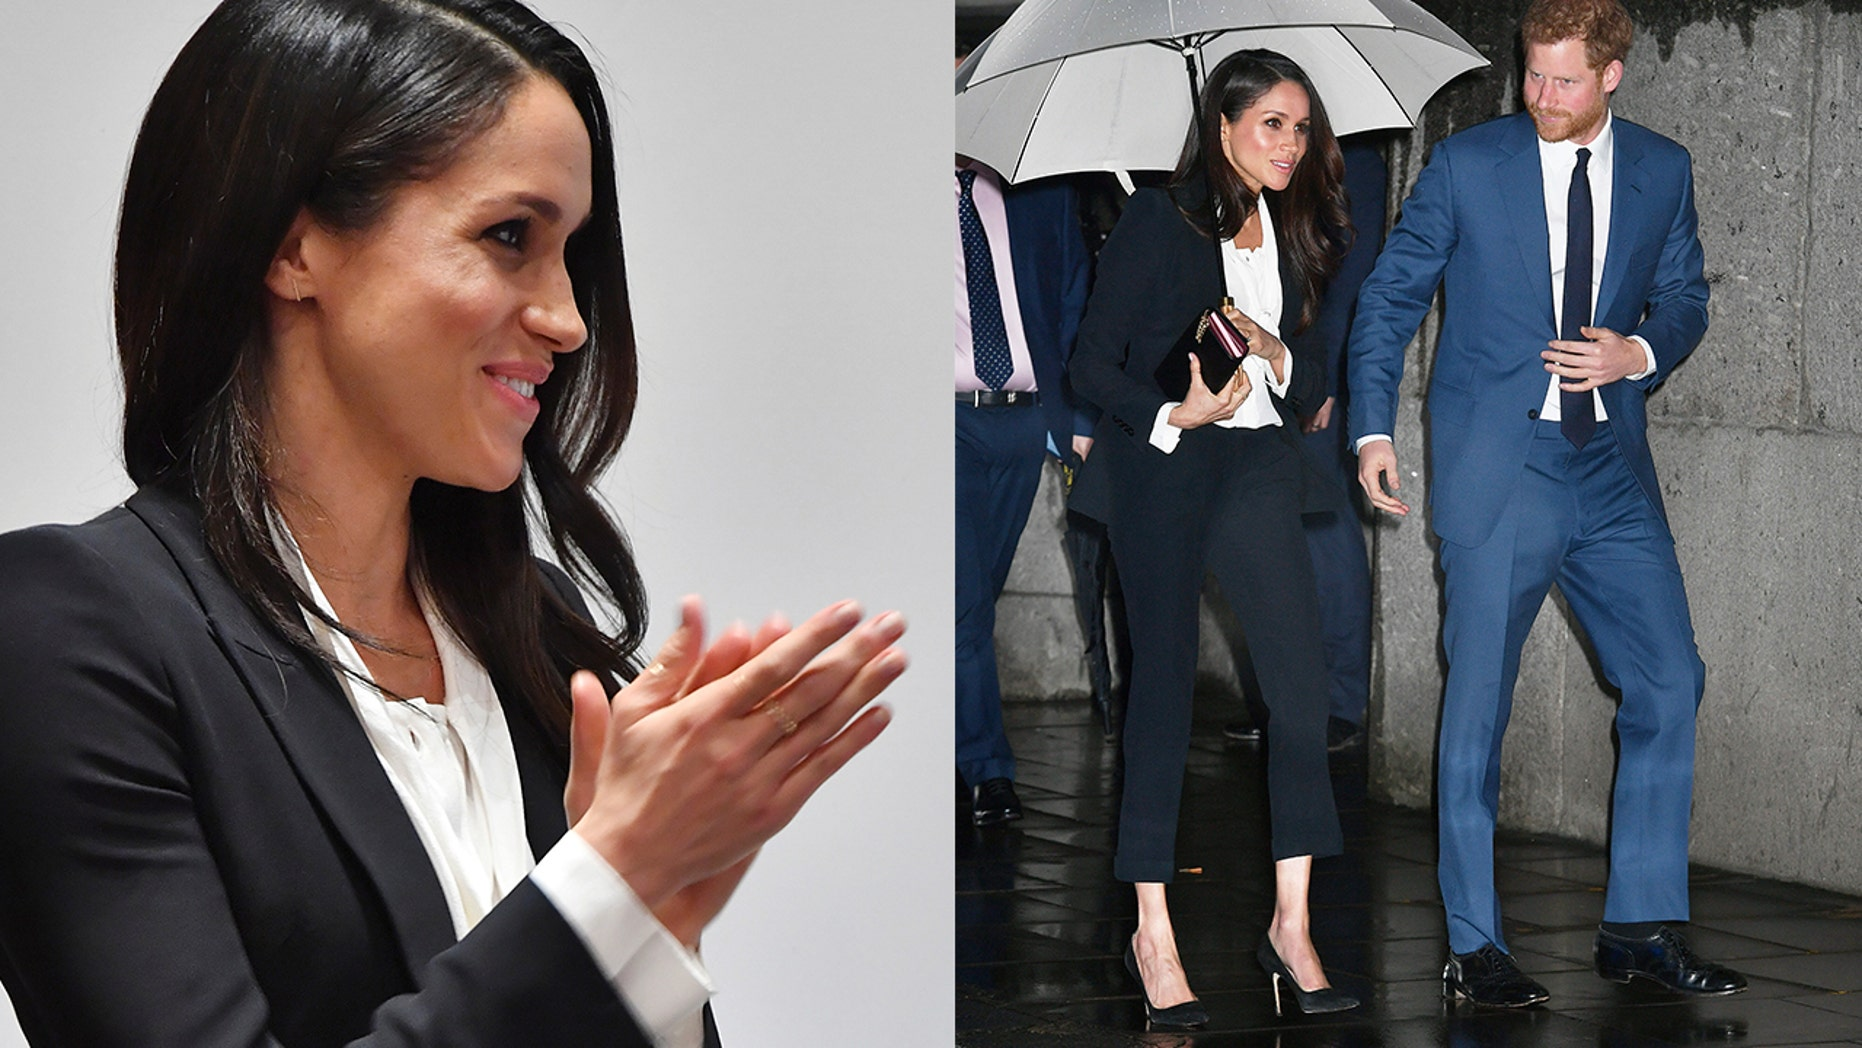 Meghan Markle's Alexander McQueen tuxedo-inspired separates sparked debate for breaking tradition at her first official evening event.